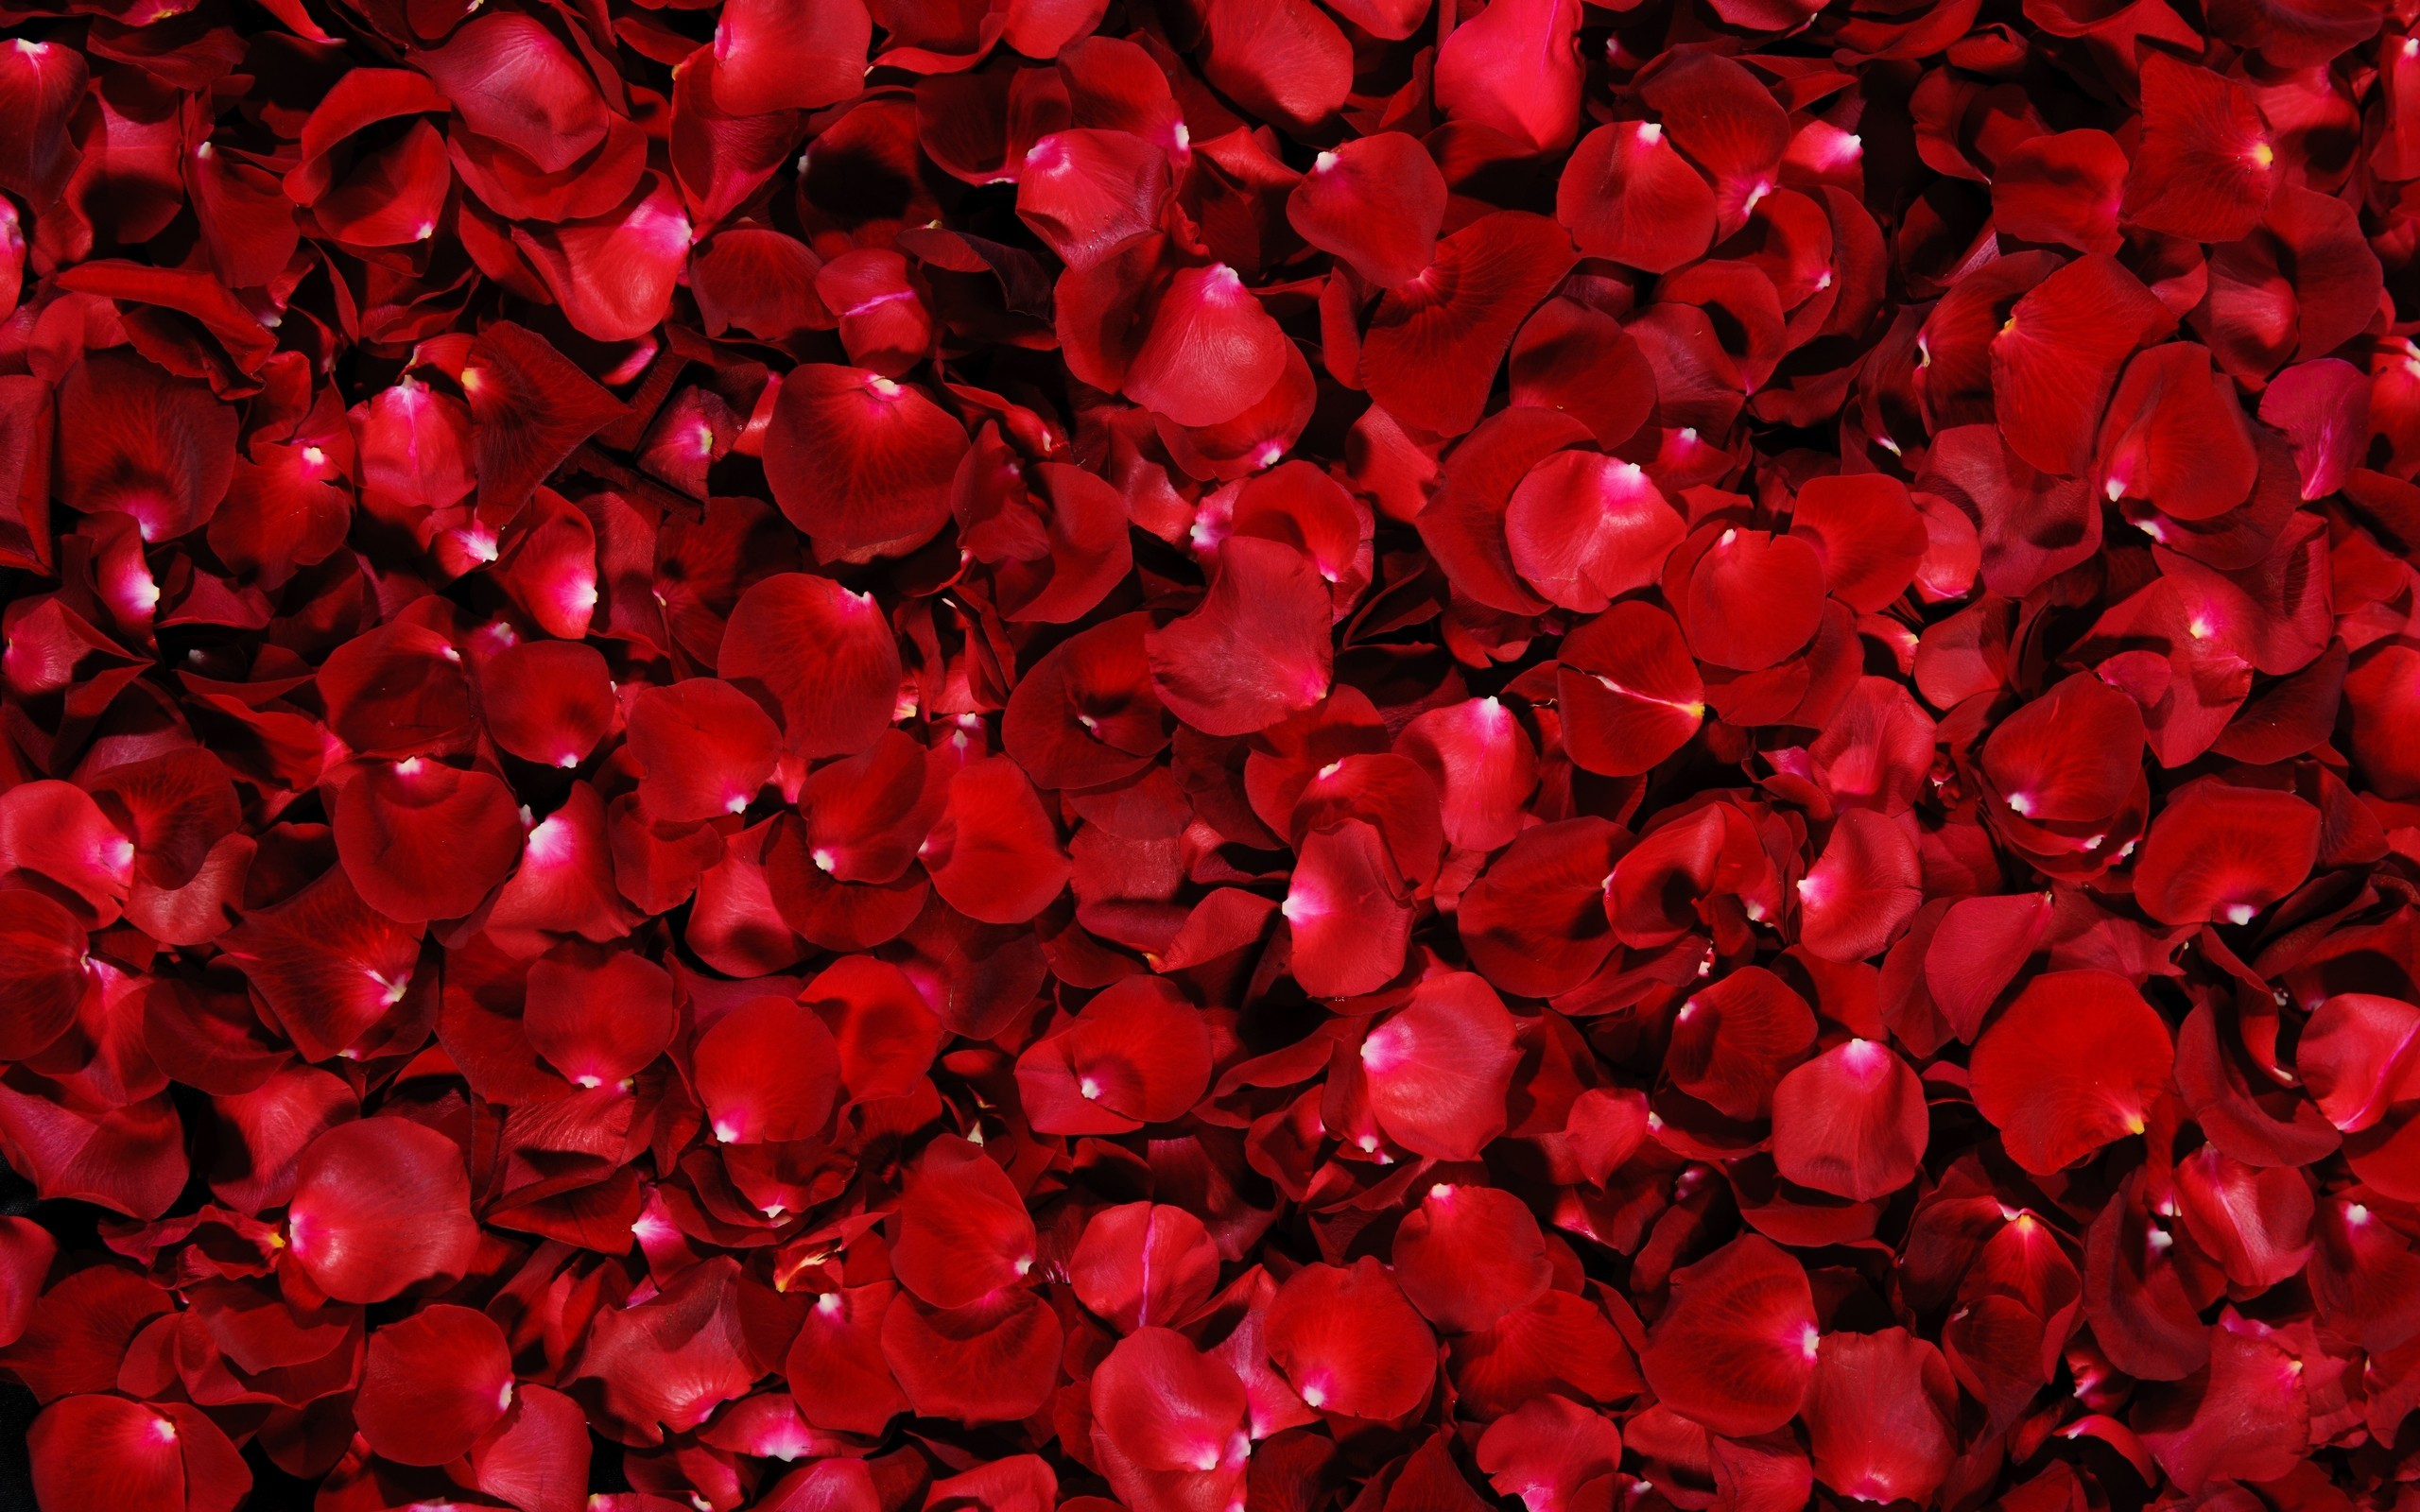 Dark Red Roses Wallpaper (59+ images)